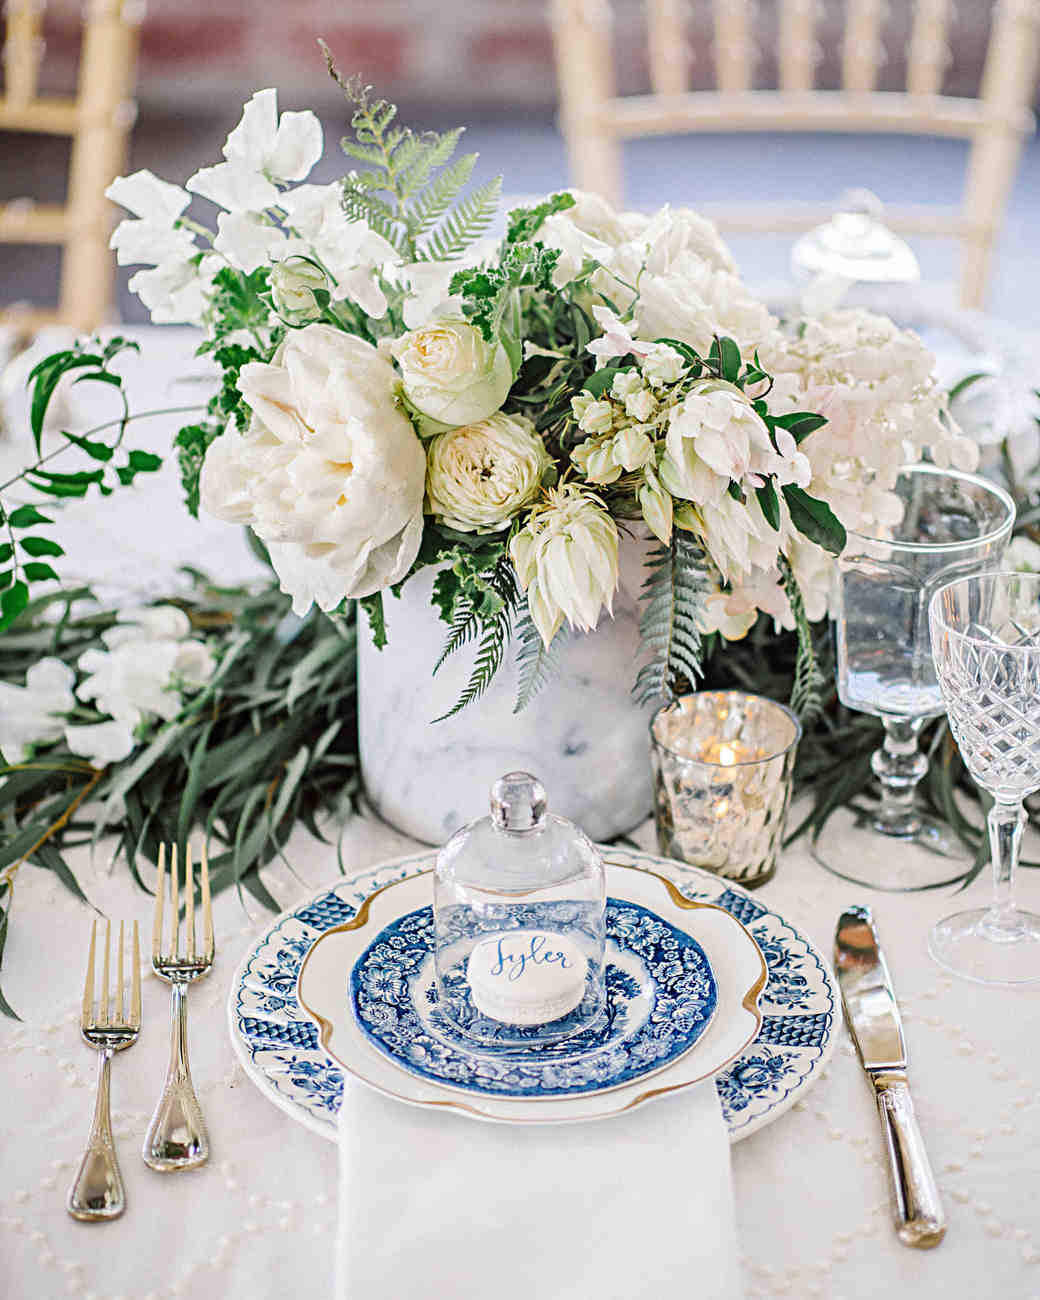 Hydrangea wedding flower arrangements martha stewart weddings 79 white wedding centerpieces junglespirit Image collections